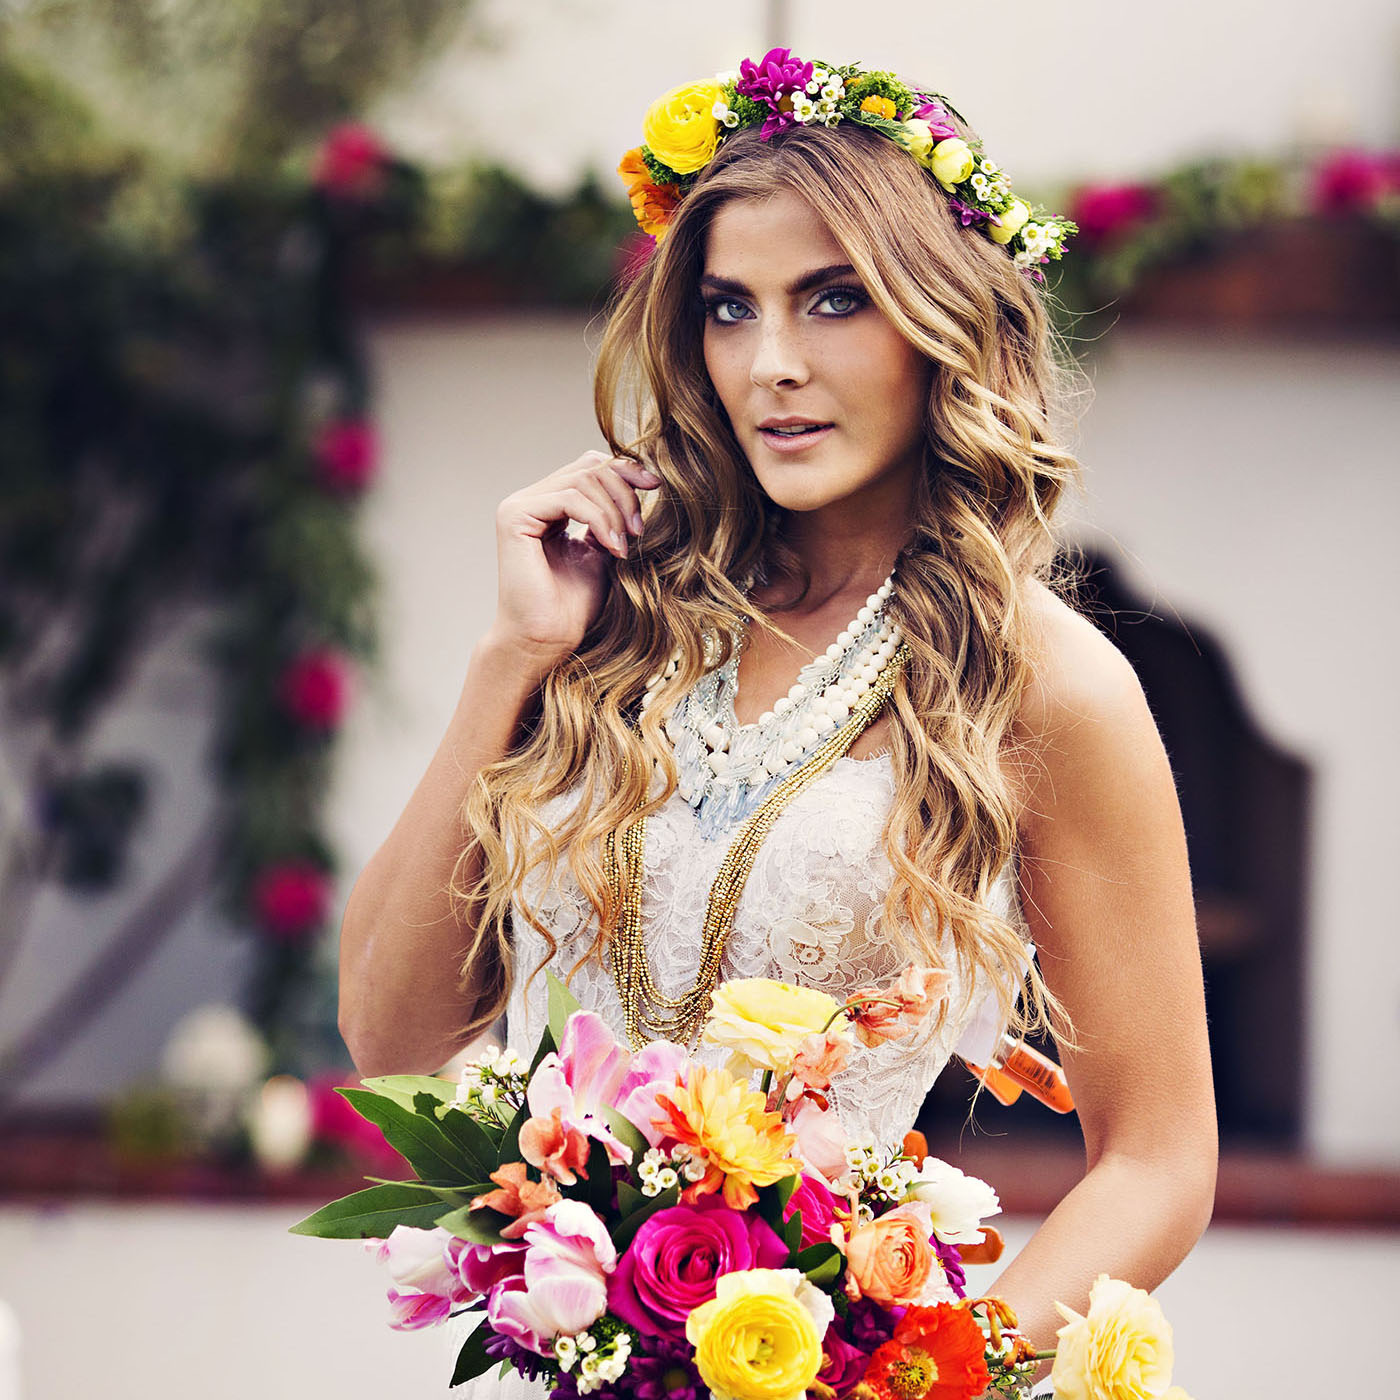 boho at el chorro - Jane Z Photography